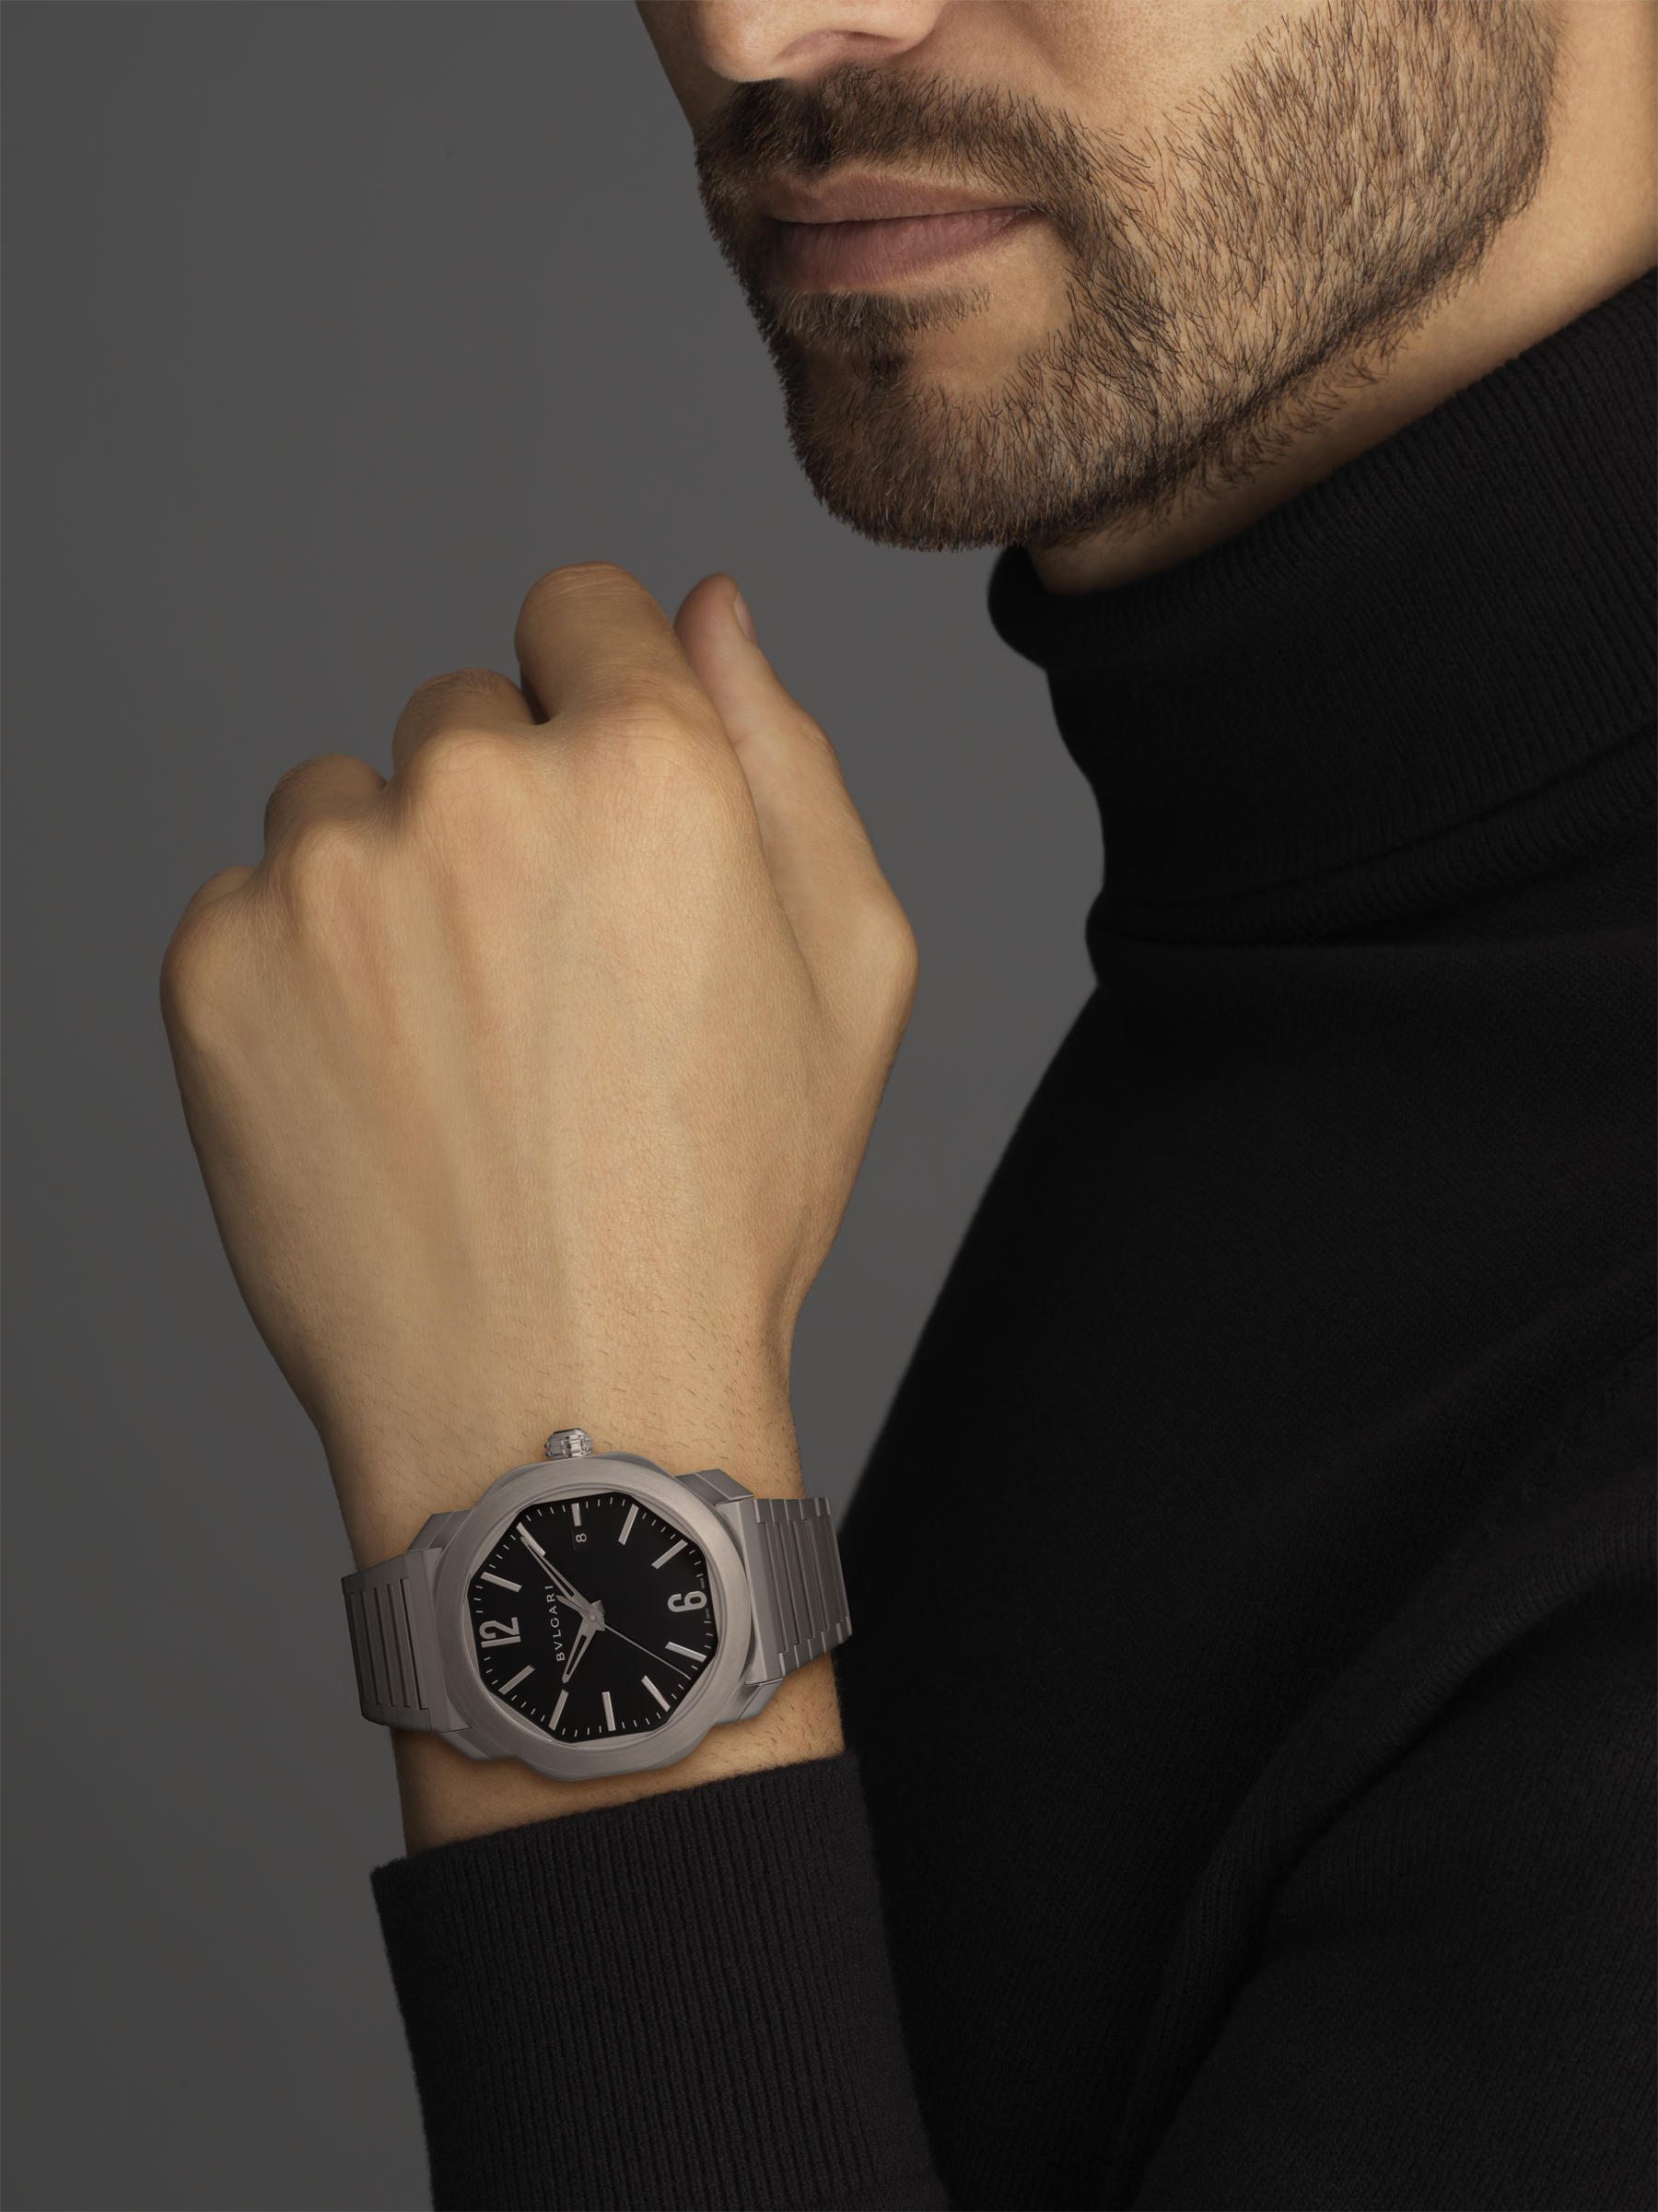 Octo Roma watch with mechanical manufacture movement, automatic winding, stiainless steel case and bracelet, black lacquered dial. 102704 image 4